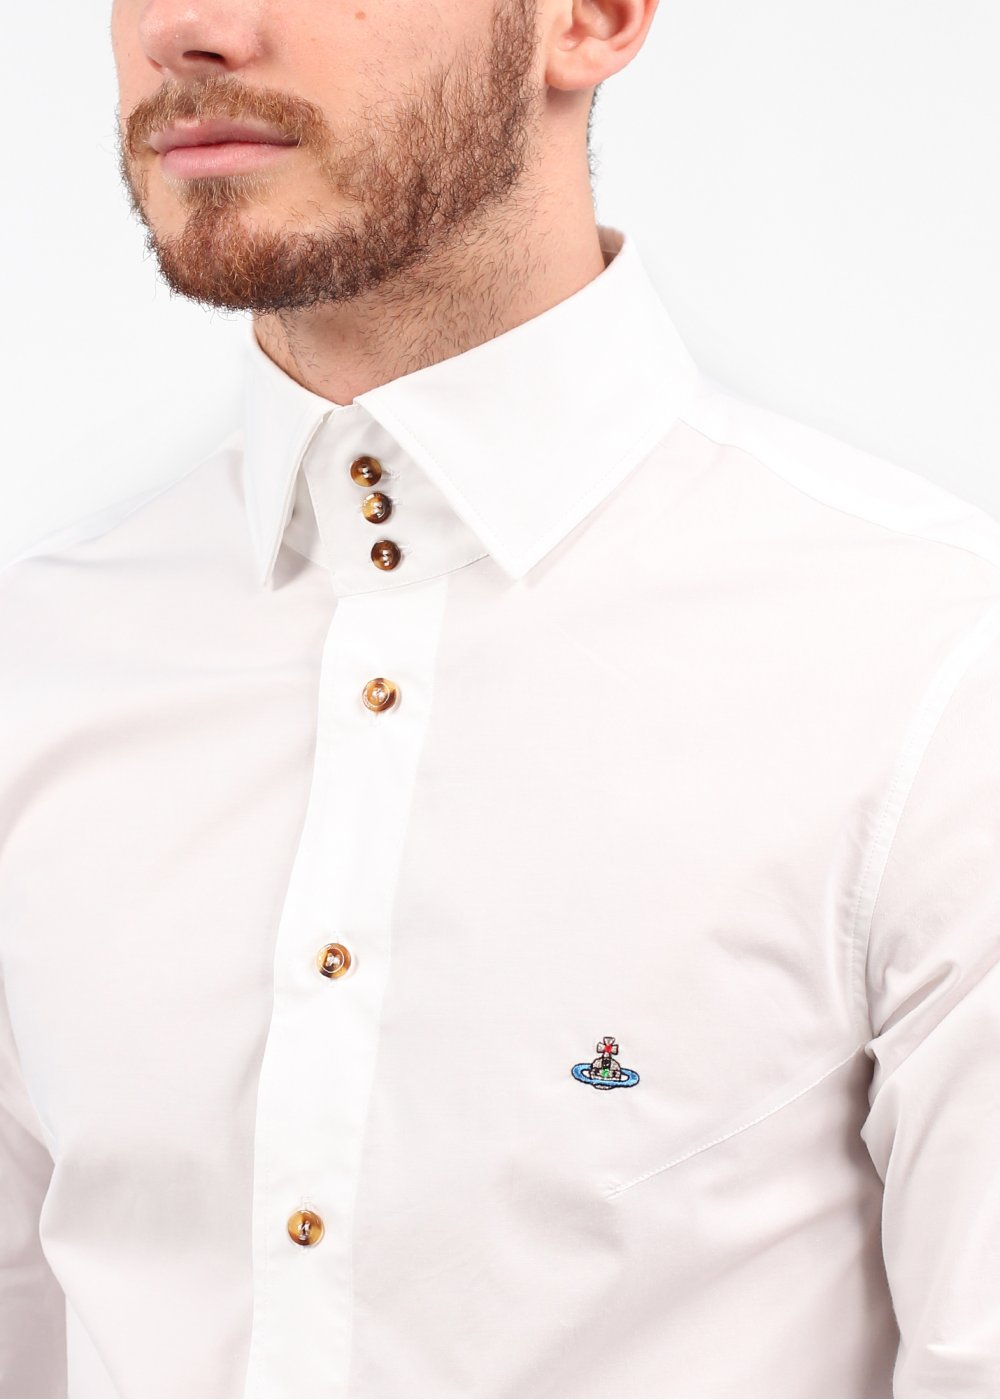 Vivienne westwood 3 button collar shirt white ss14 for Ray donovan white dress shirt brand